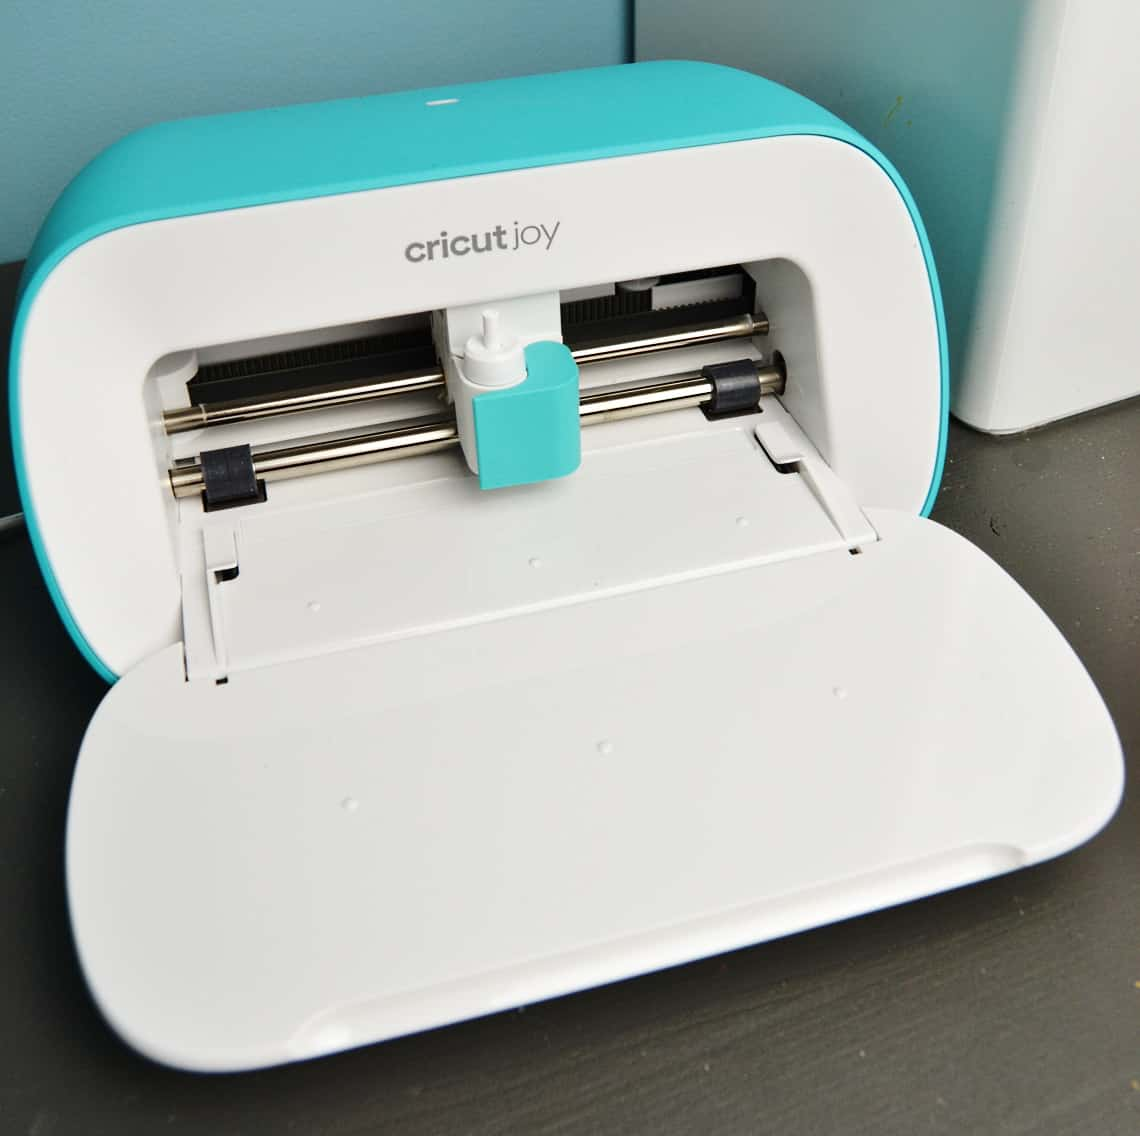 the Cricut Joy close up